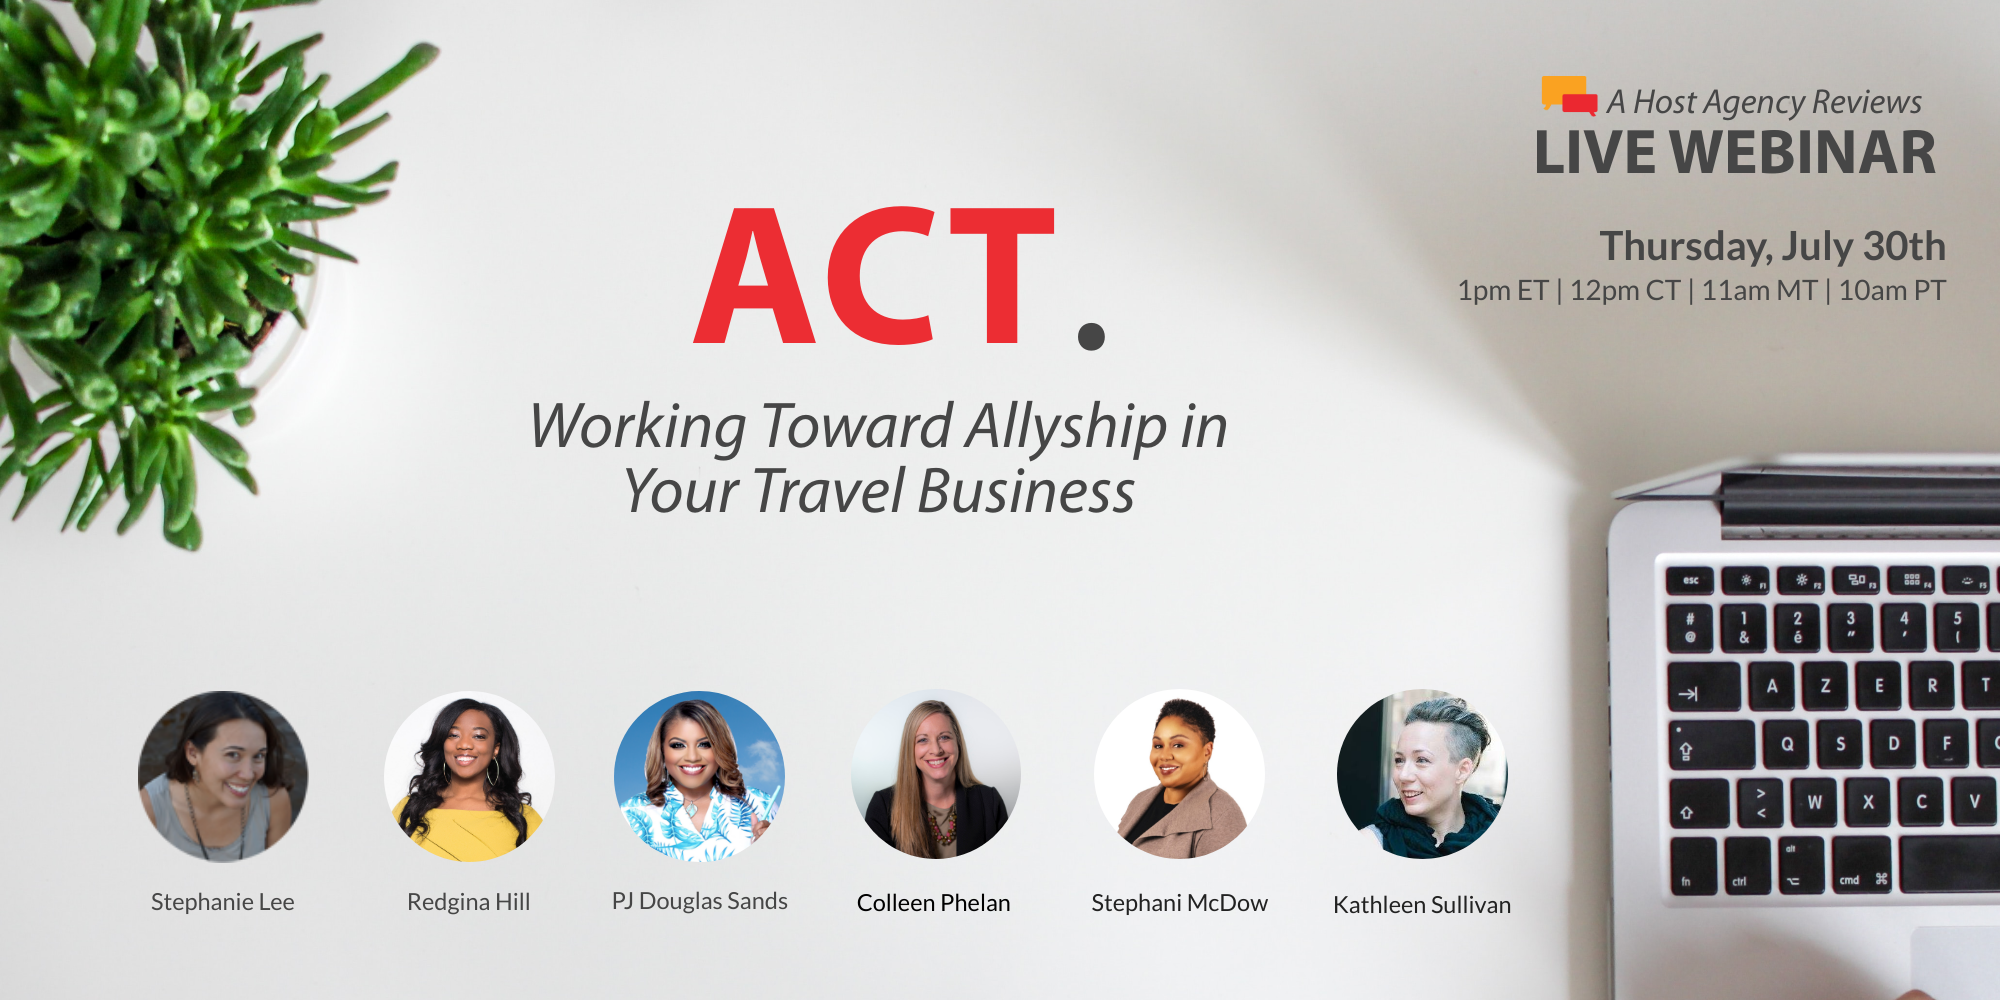 Act. Working Toward Allyship in Your Travel Business